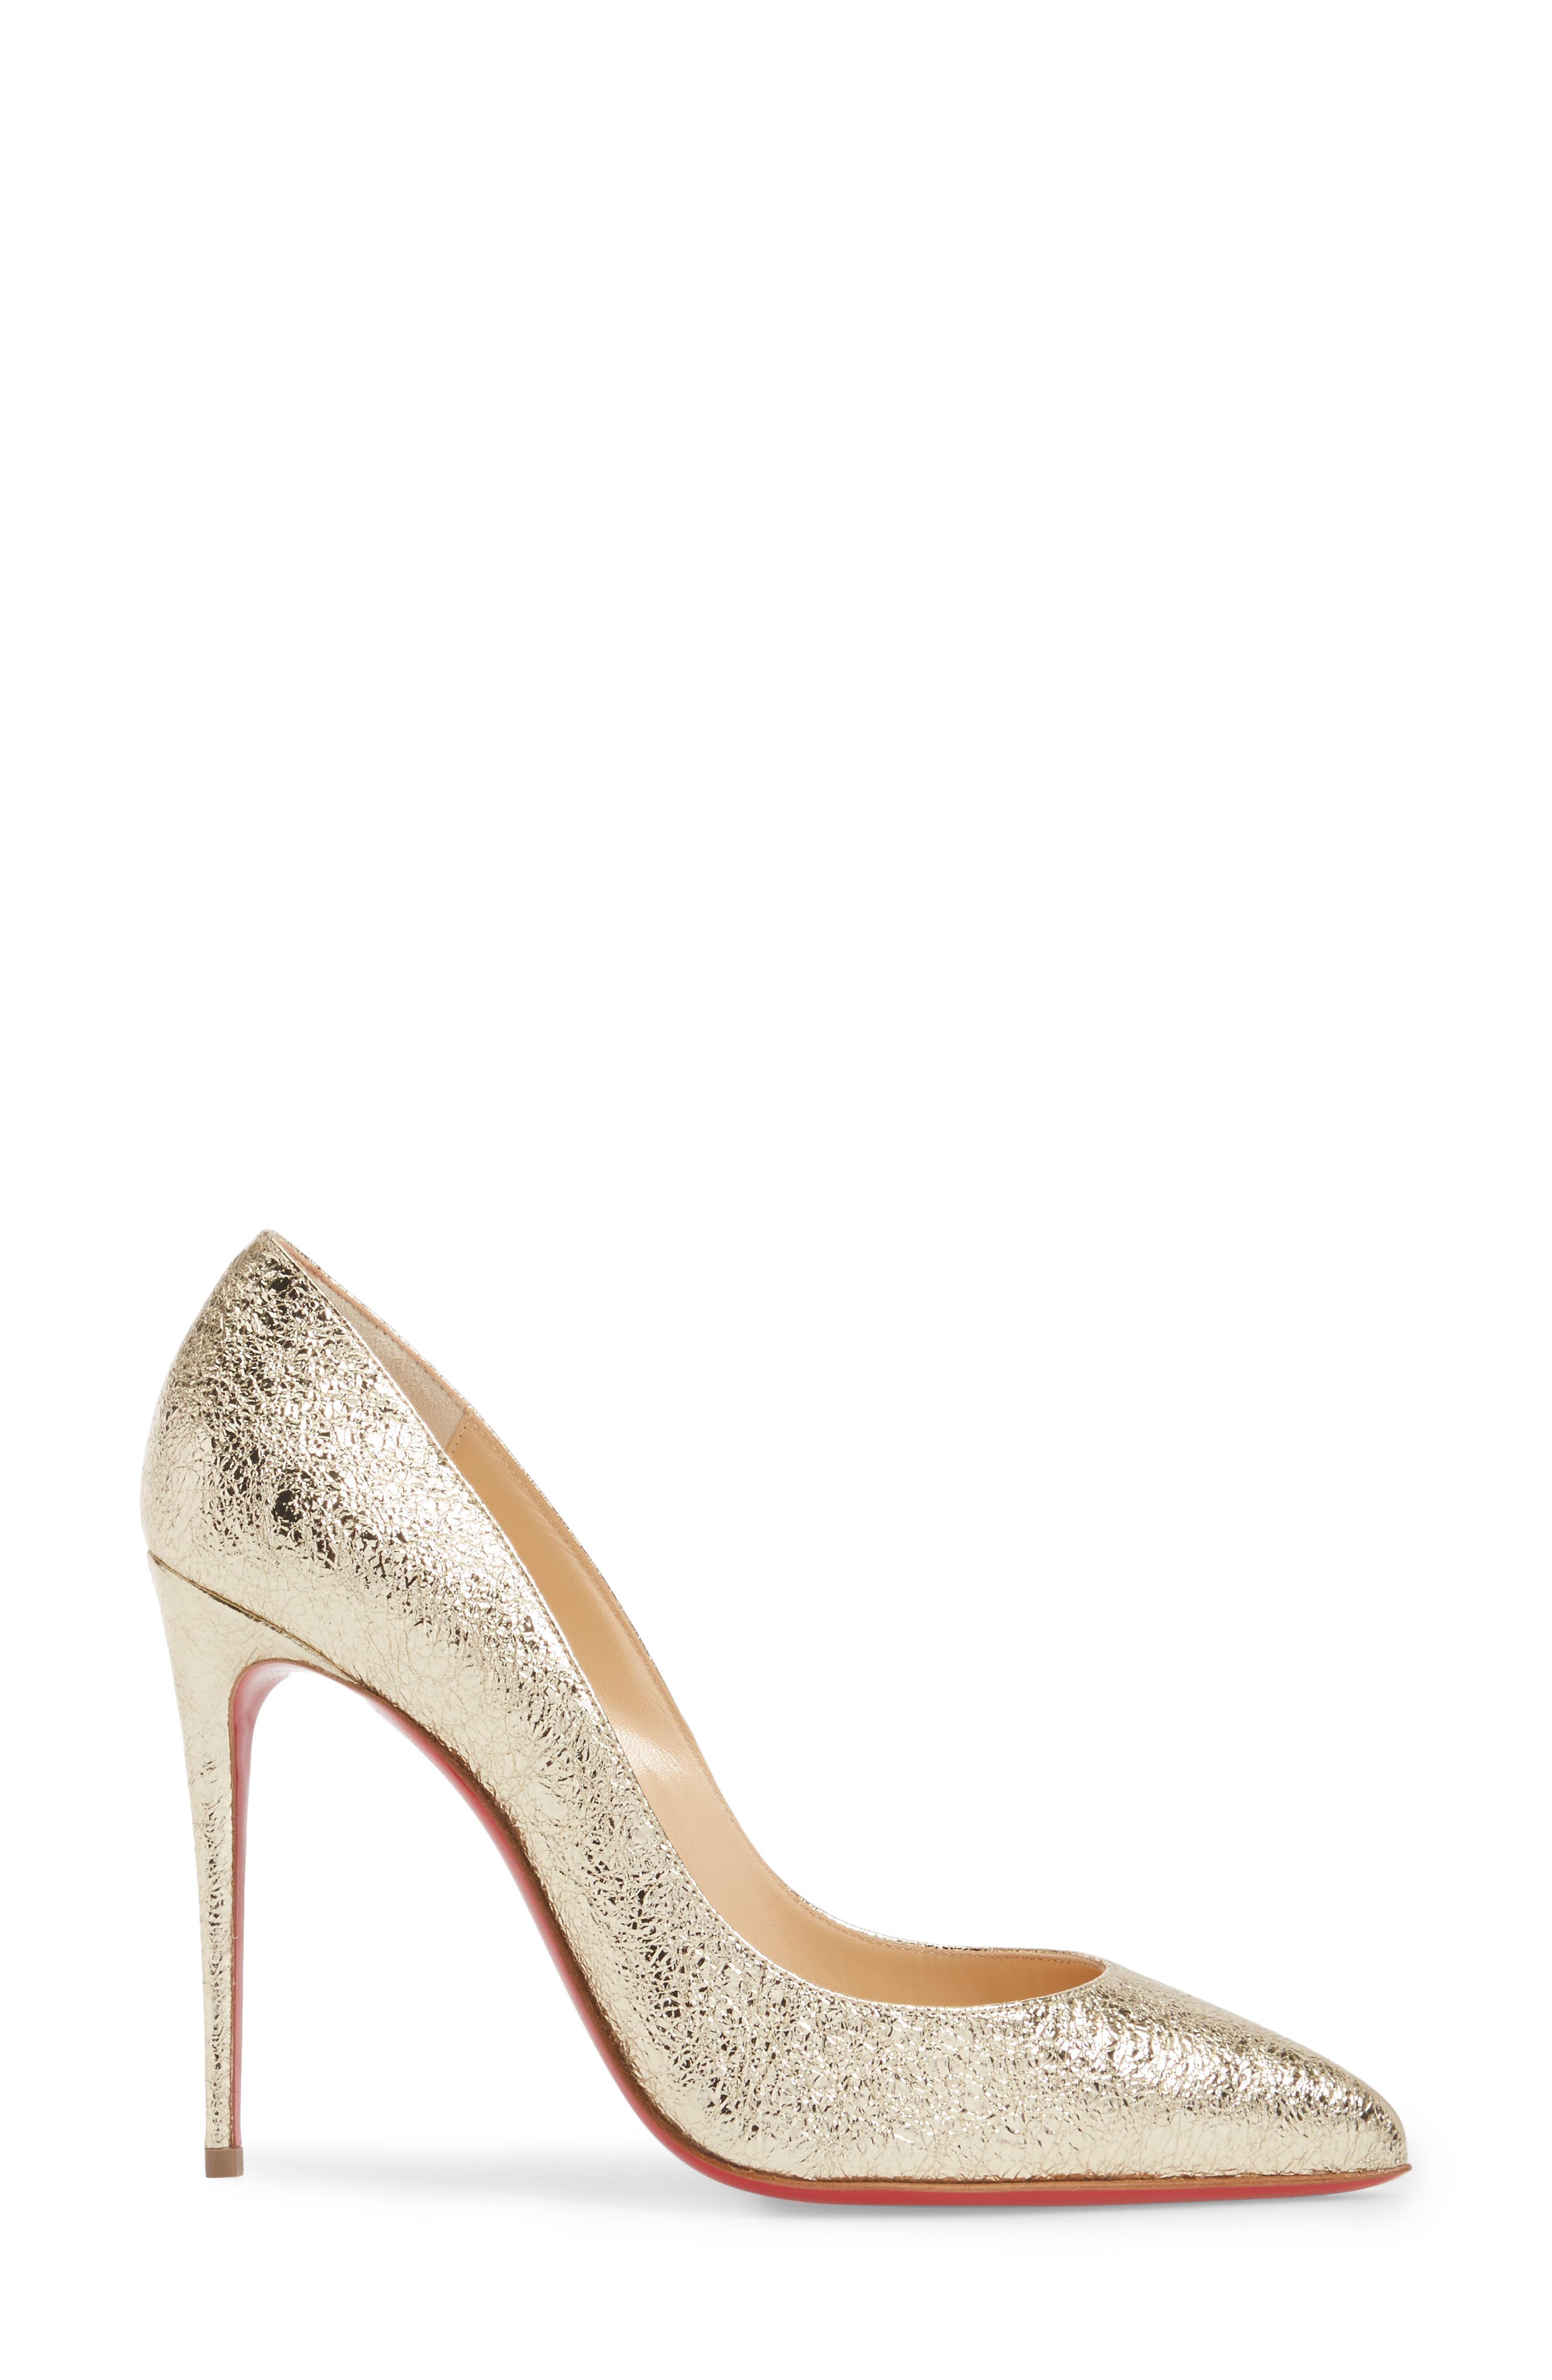 Pigalle Follies Pointy Toe Pump,                             Alternate thumbnail 3, color,                             040